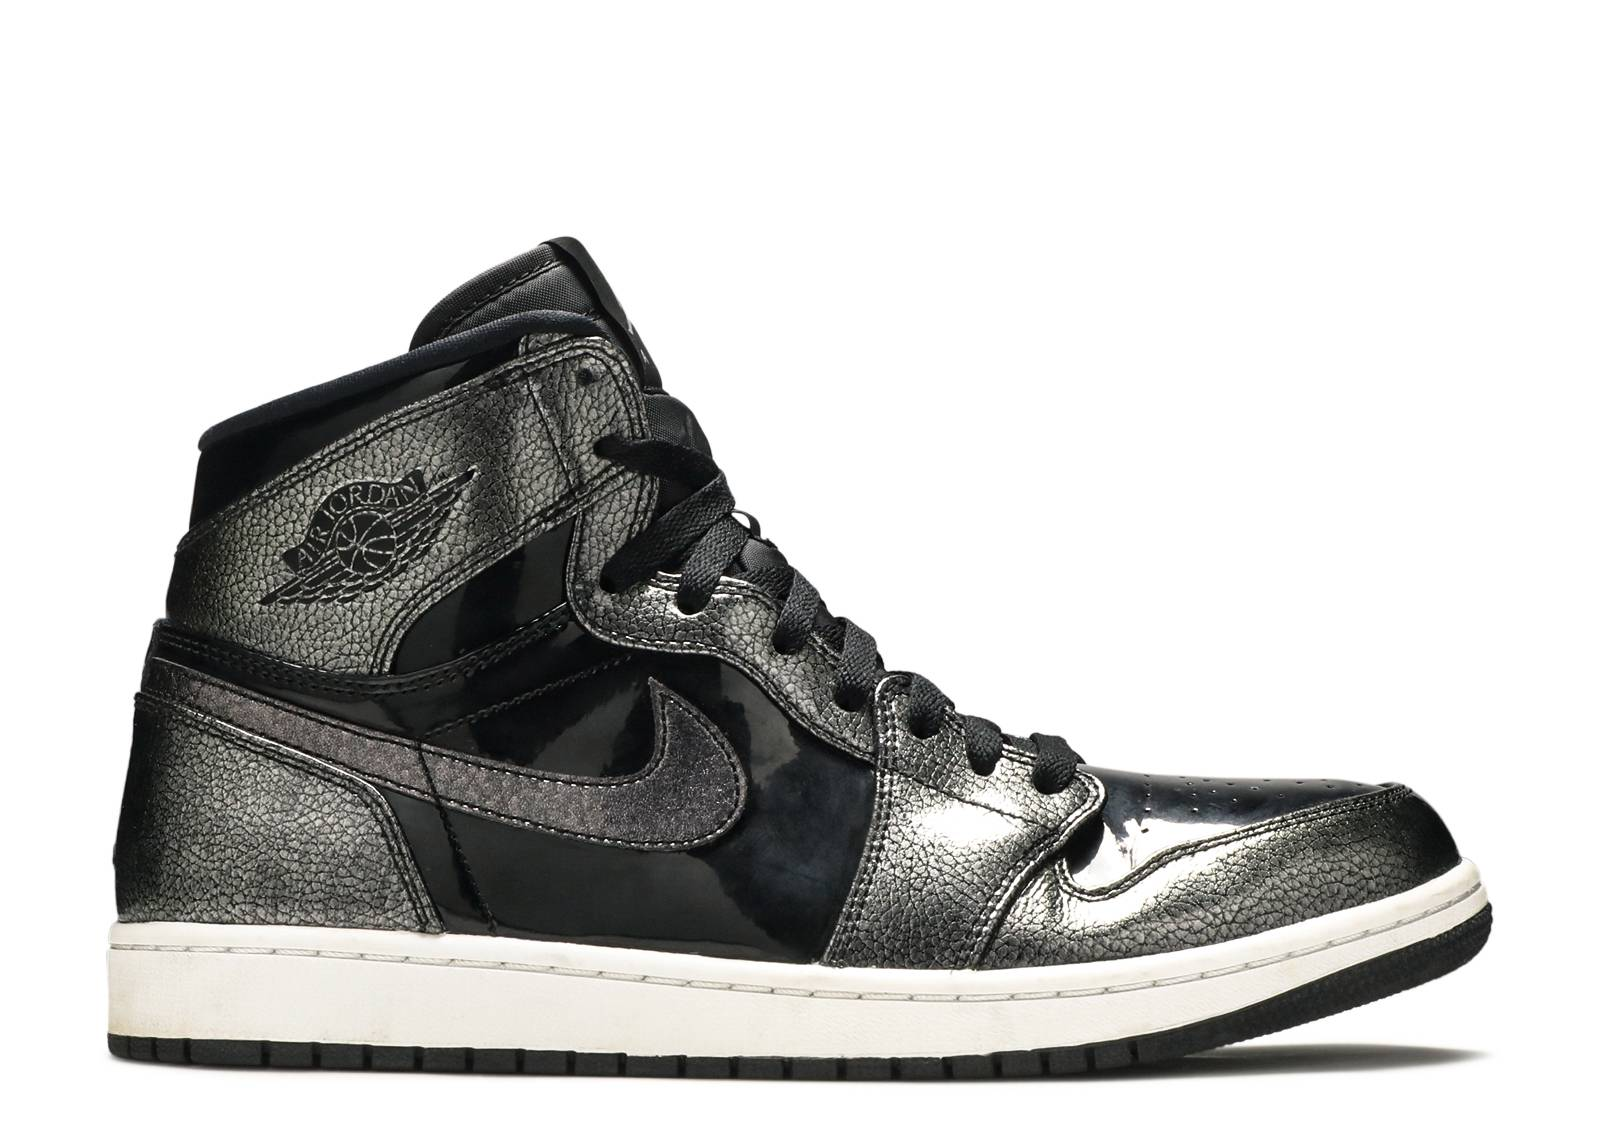 low priced d3f2b 5800e air jordan 1 retro high